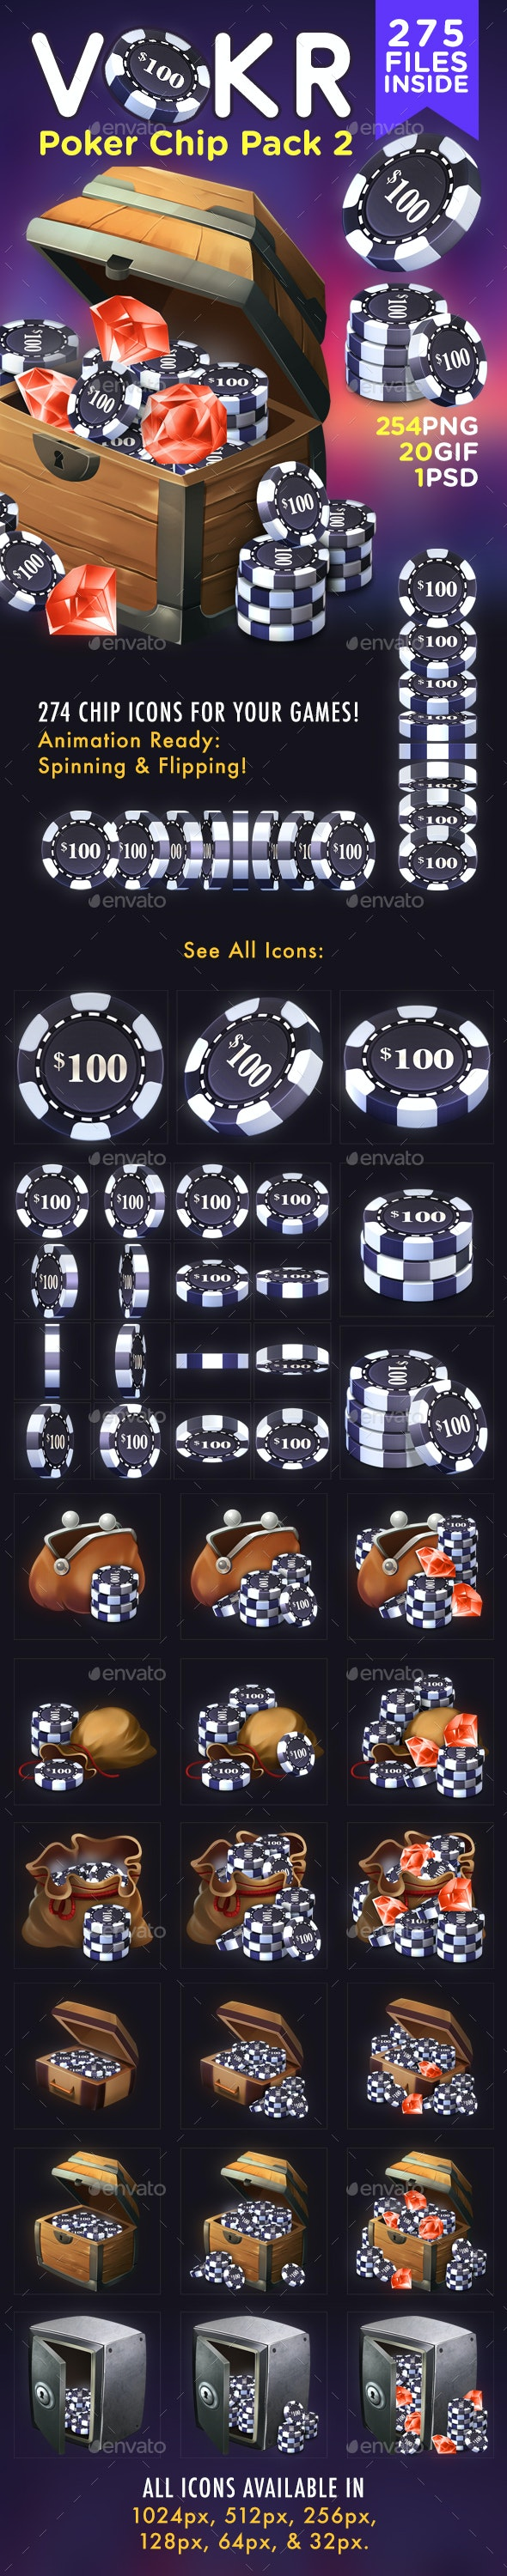 VOKR - Poker Chip Pack 2 - Miscellaneous Game Assets